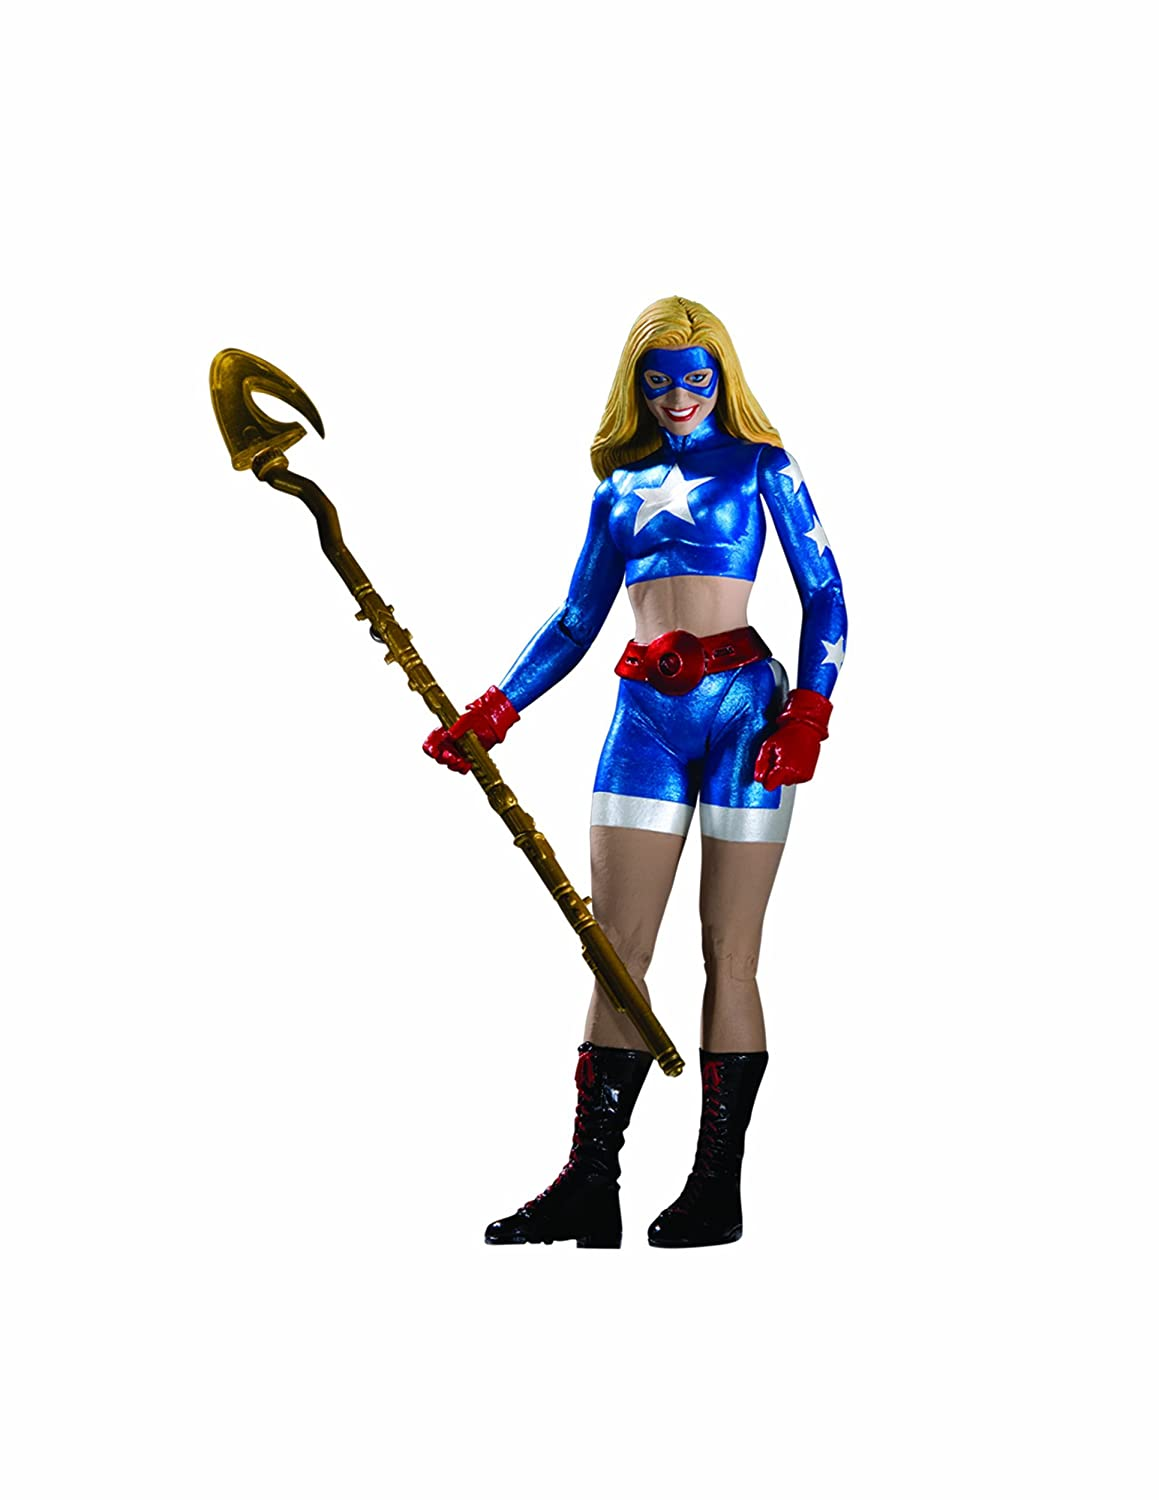 Justice Society of America: Series 2: Stargirl Action Figure by DC Comics